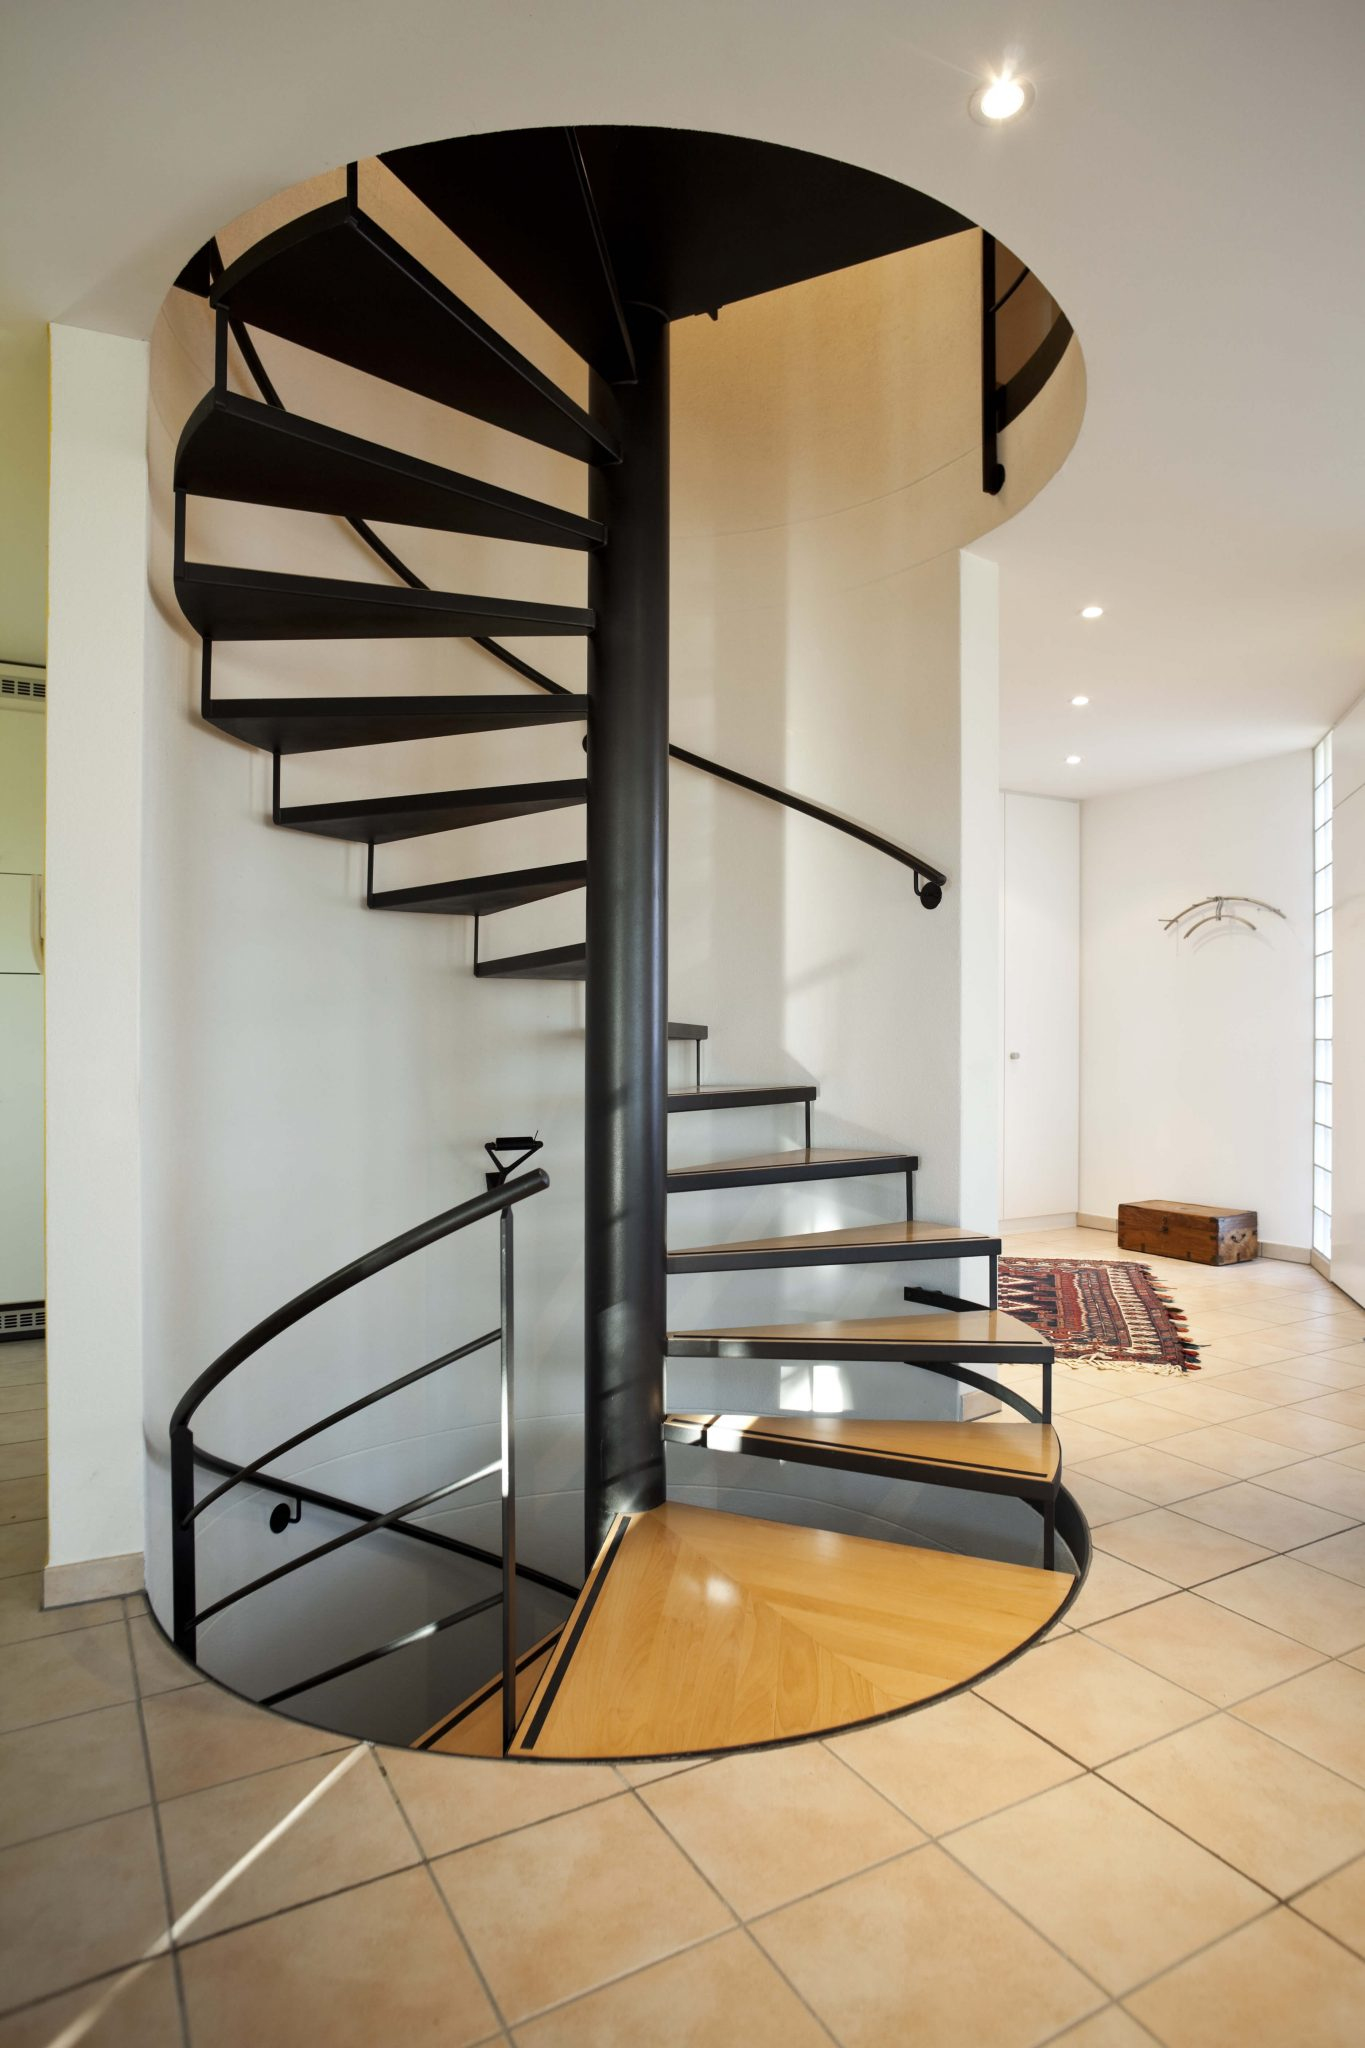 33 flamboyant modern staircase designs - Modern interior design with spiral stairs contemporary spiral staircase design ...